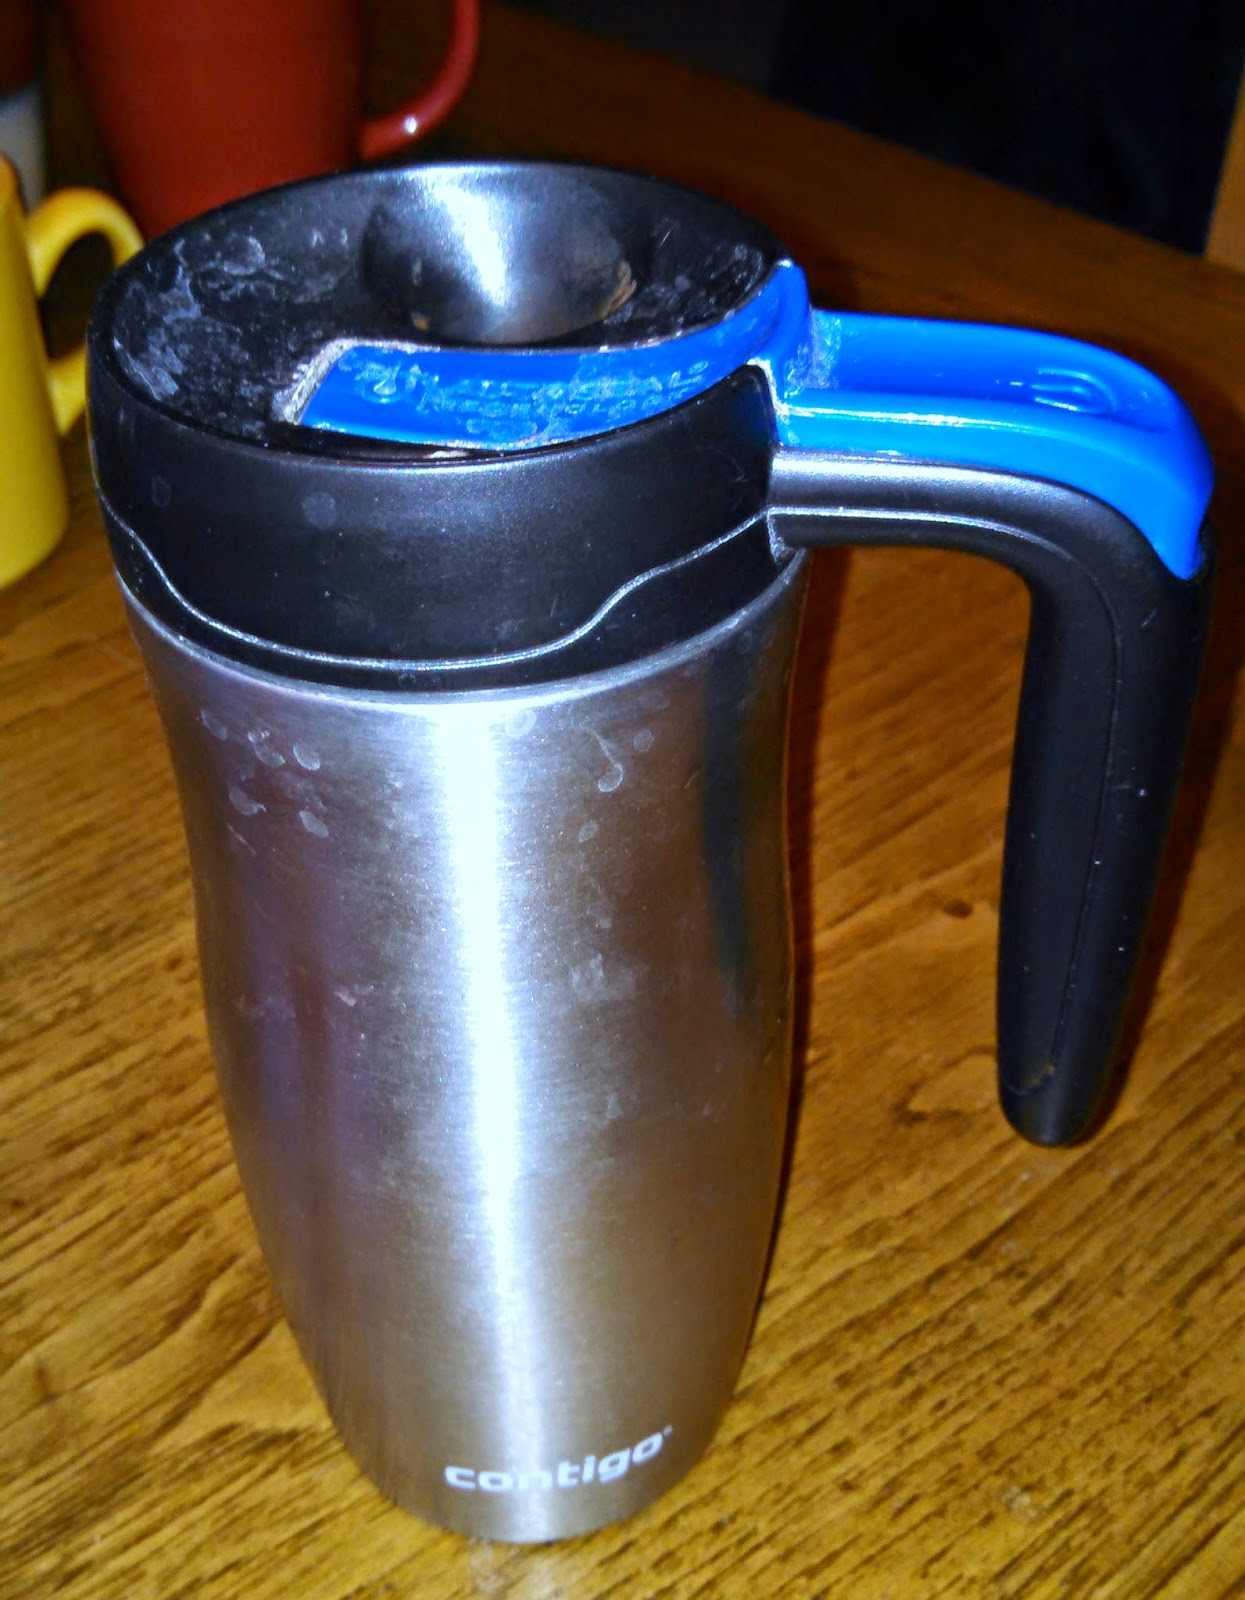 Contigo thermal travel coffee mug- it does not leak!